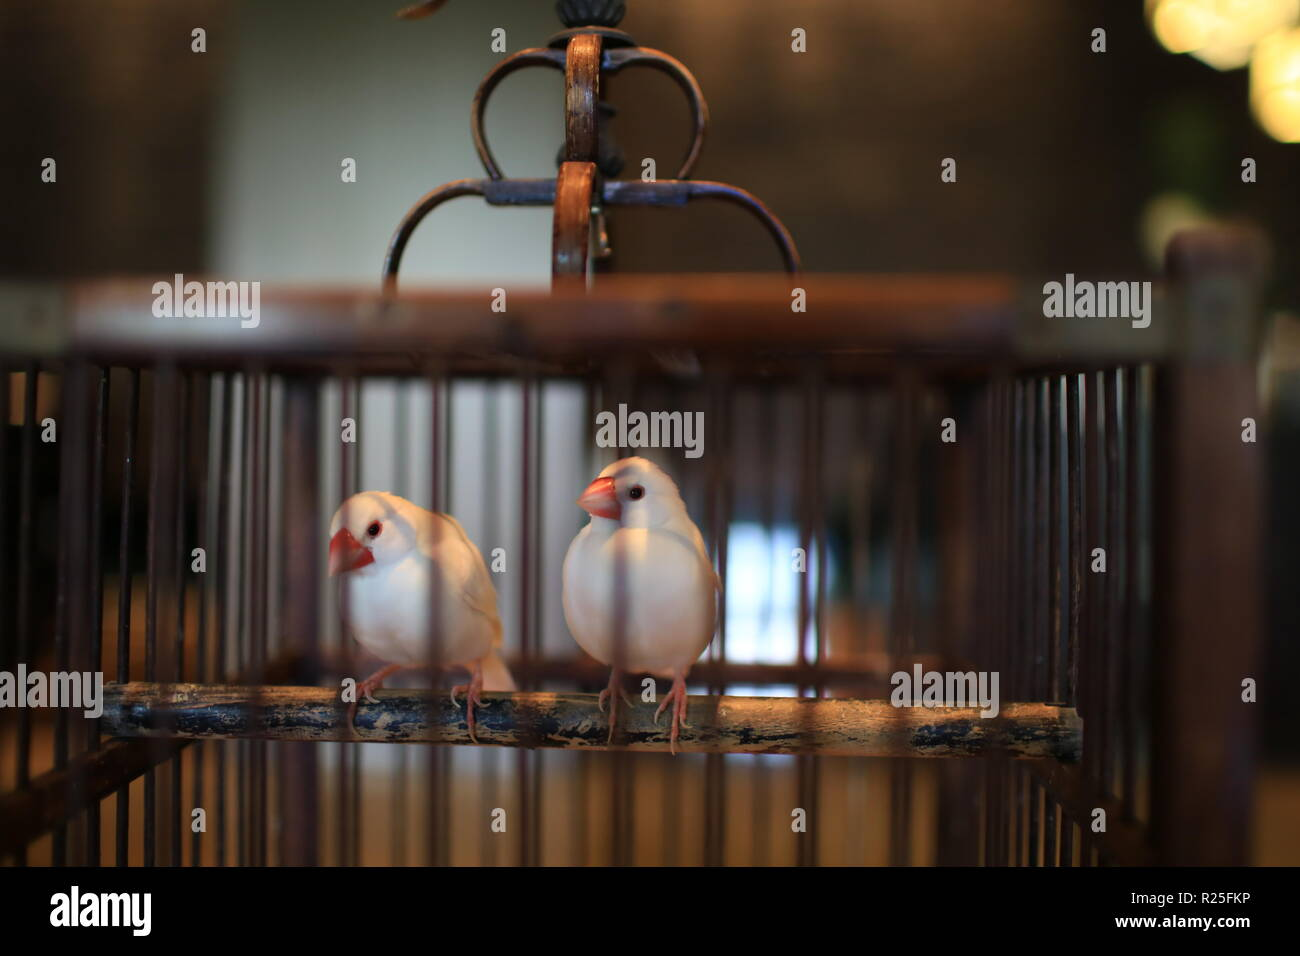 chinese bird in cage - Stock Image